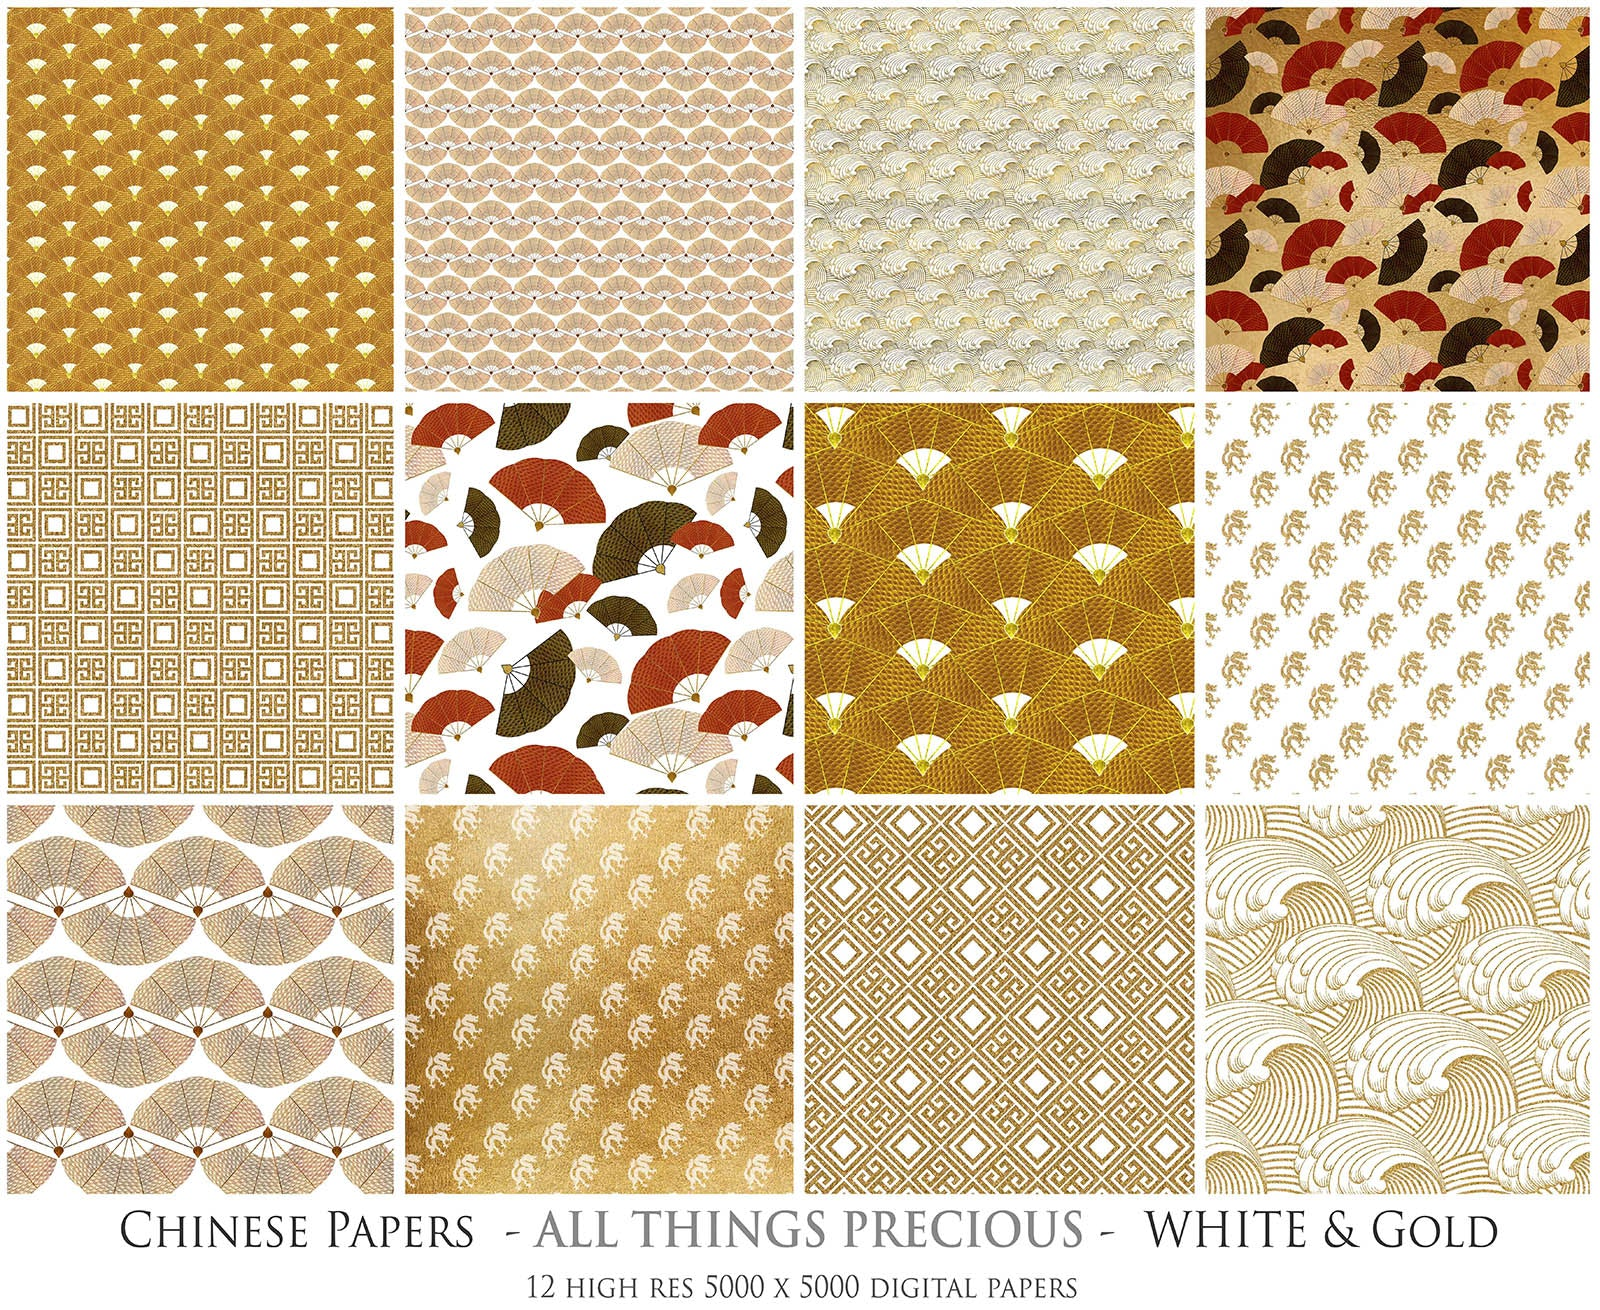 CHINESE PATTERN - GOLD & WHITE Digital Papers Set 3